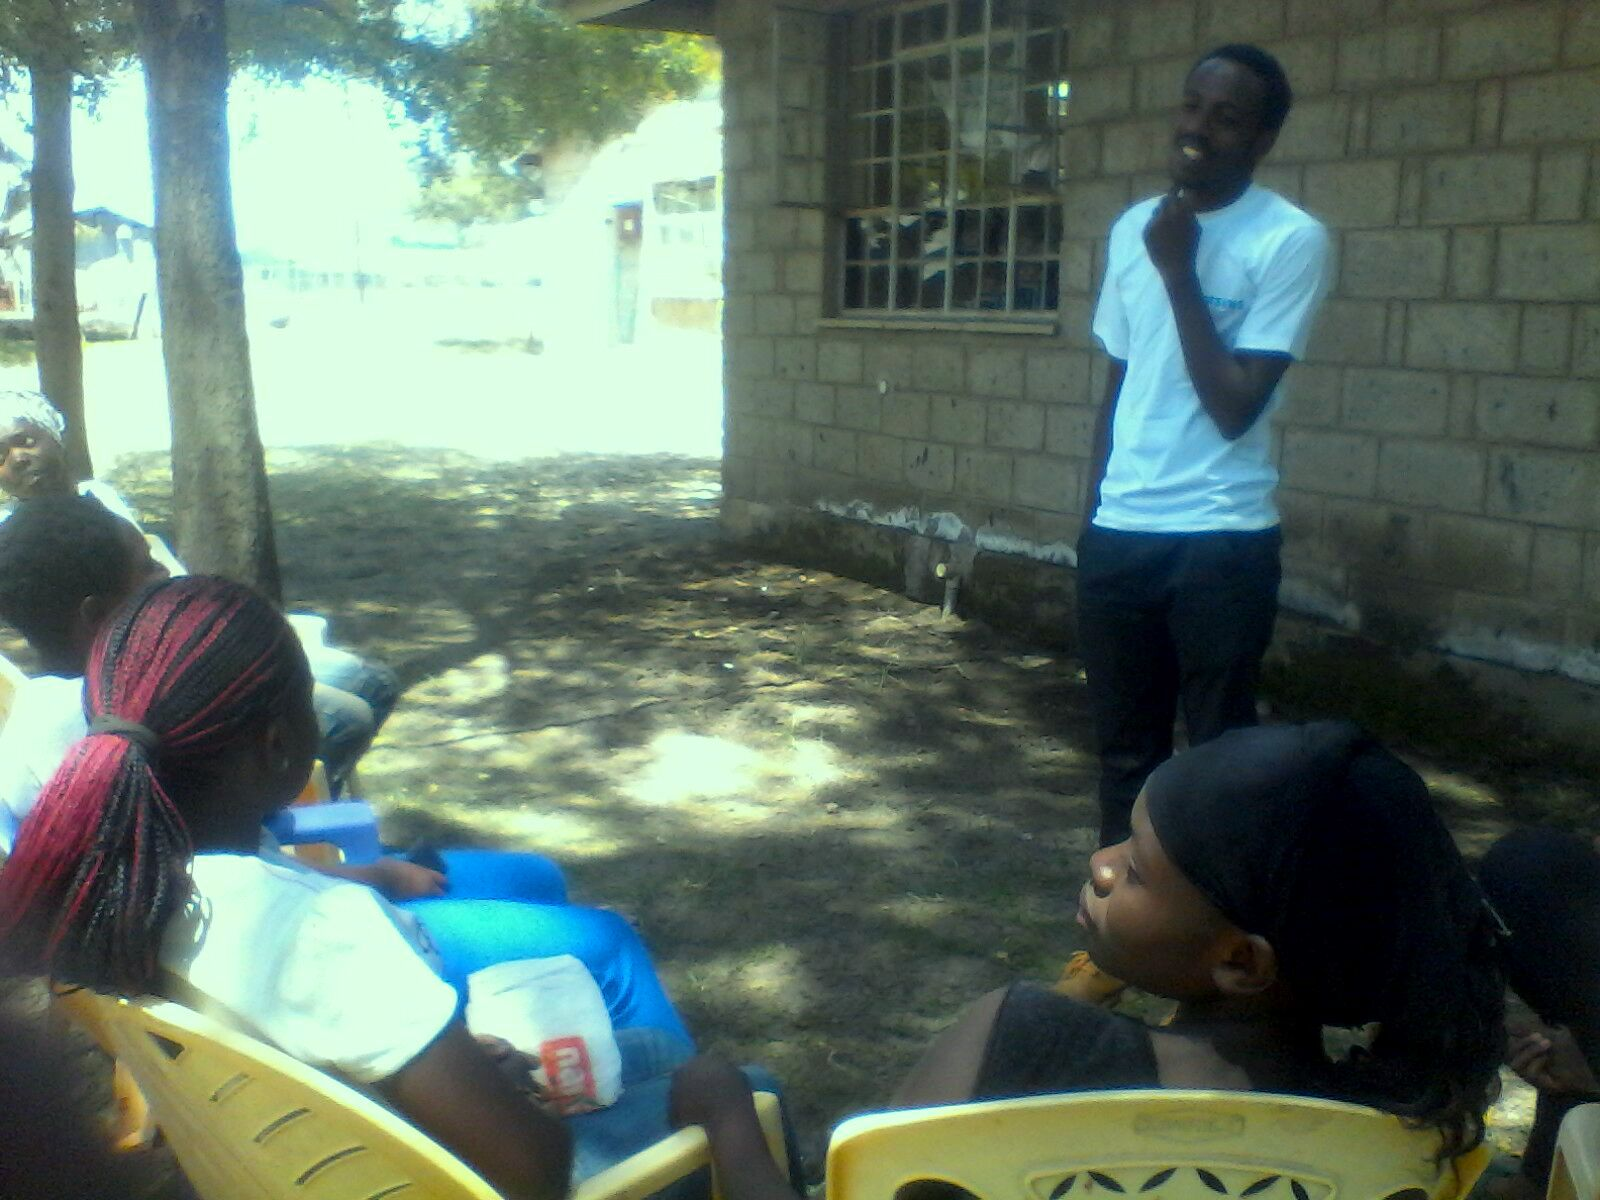 Kevin Kinuthia, engaging some of the young people from Mukuru slums during the Muungano Youth Engagement Forum